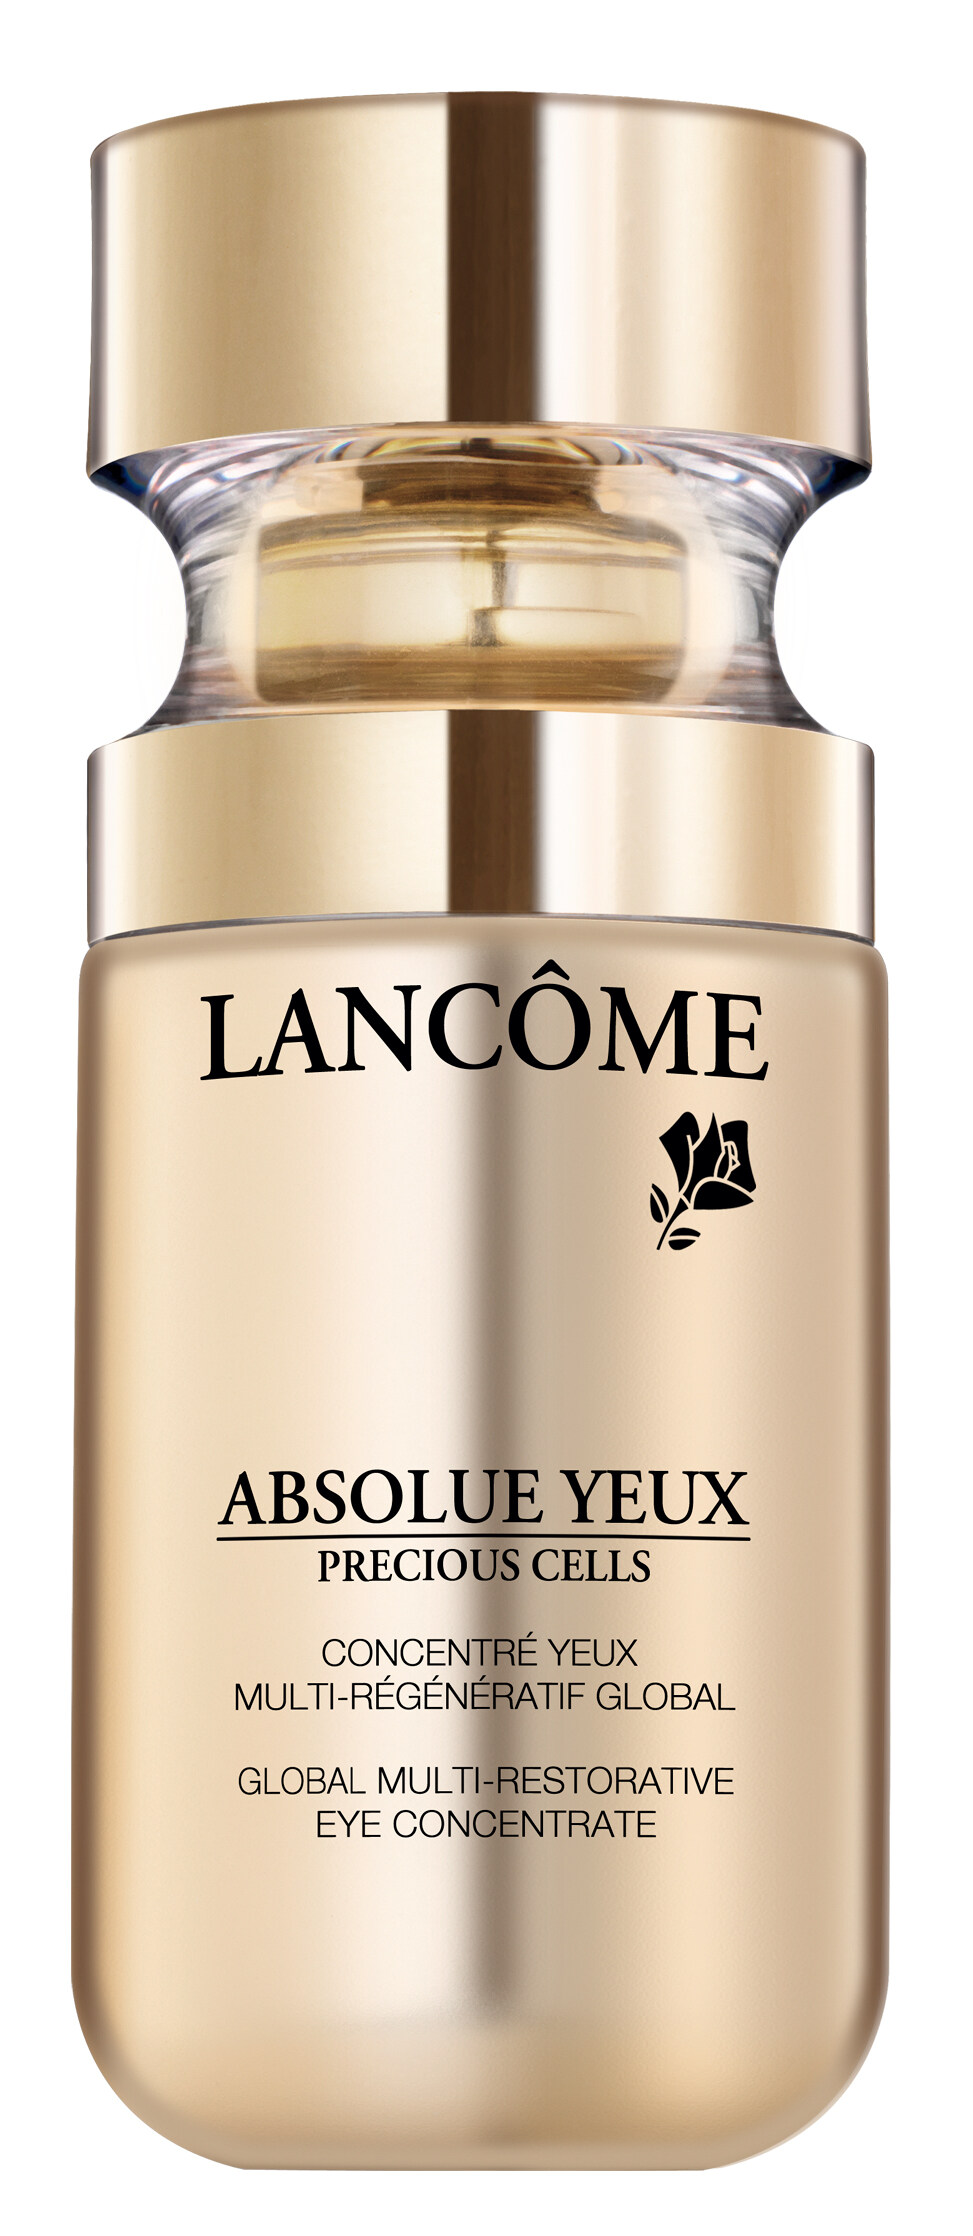 Lancôme Absolue Yeux Precious Cells Global Multi-Restorative Eye Concentrate($1,